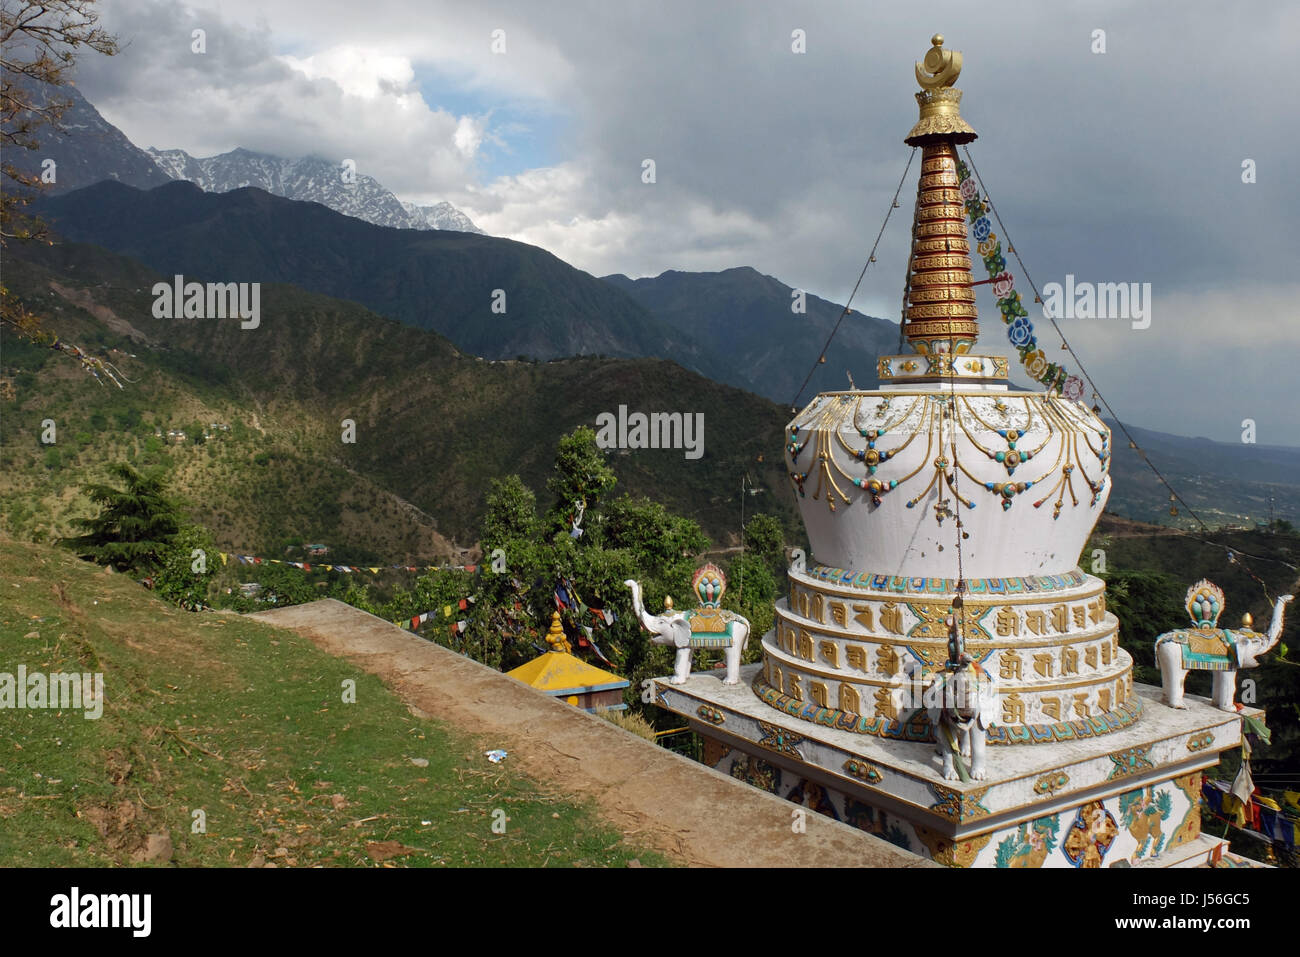 Stupa near the Tsuglagkhang complex at McLeod Ganj, Himachal Pradesh. - Stock Image